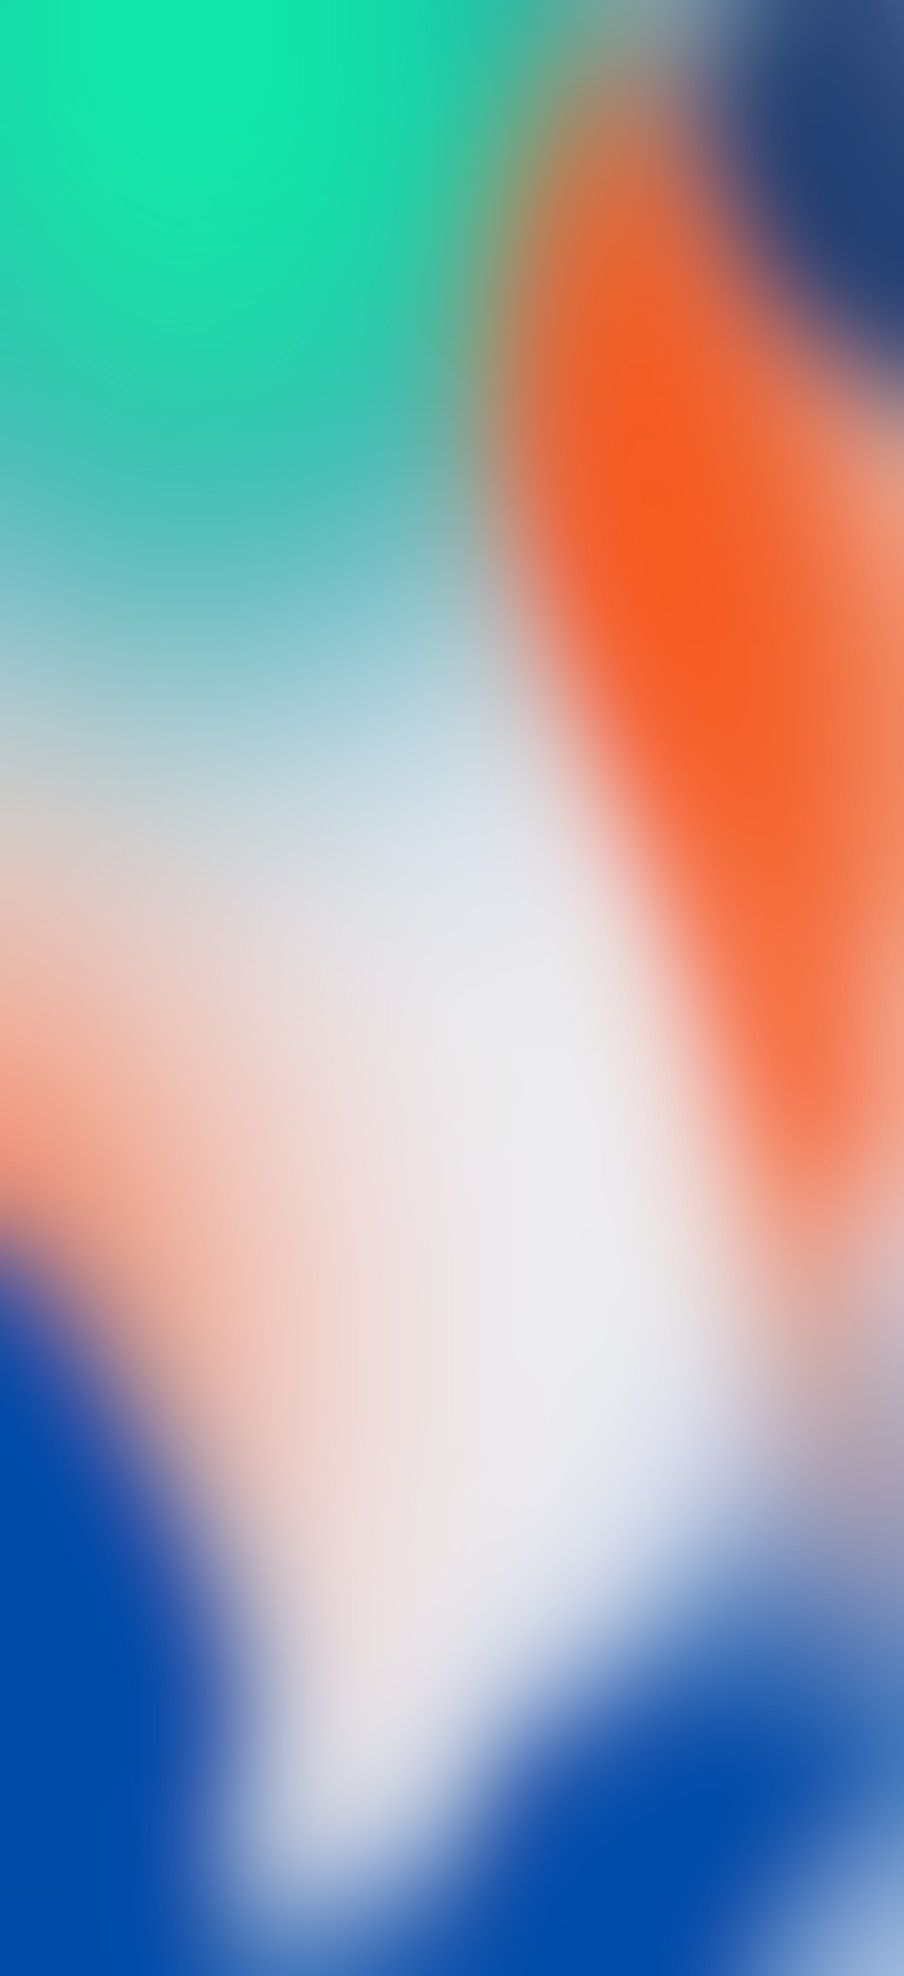 iOS 11, iPhone X, orange, green, blue, Stock, abstract, apple